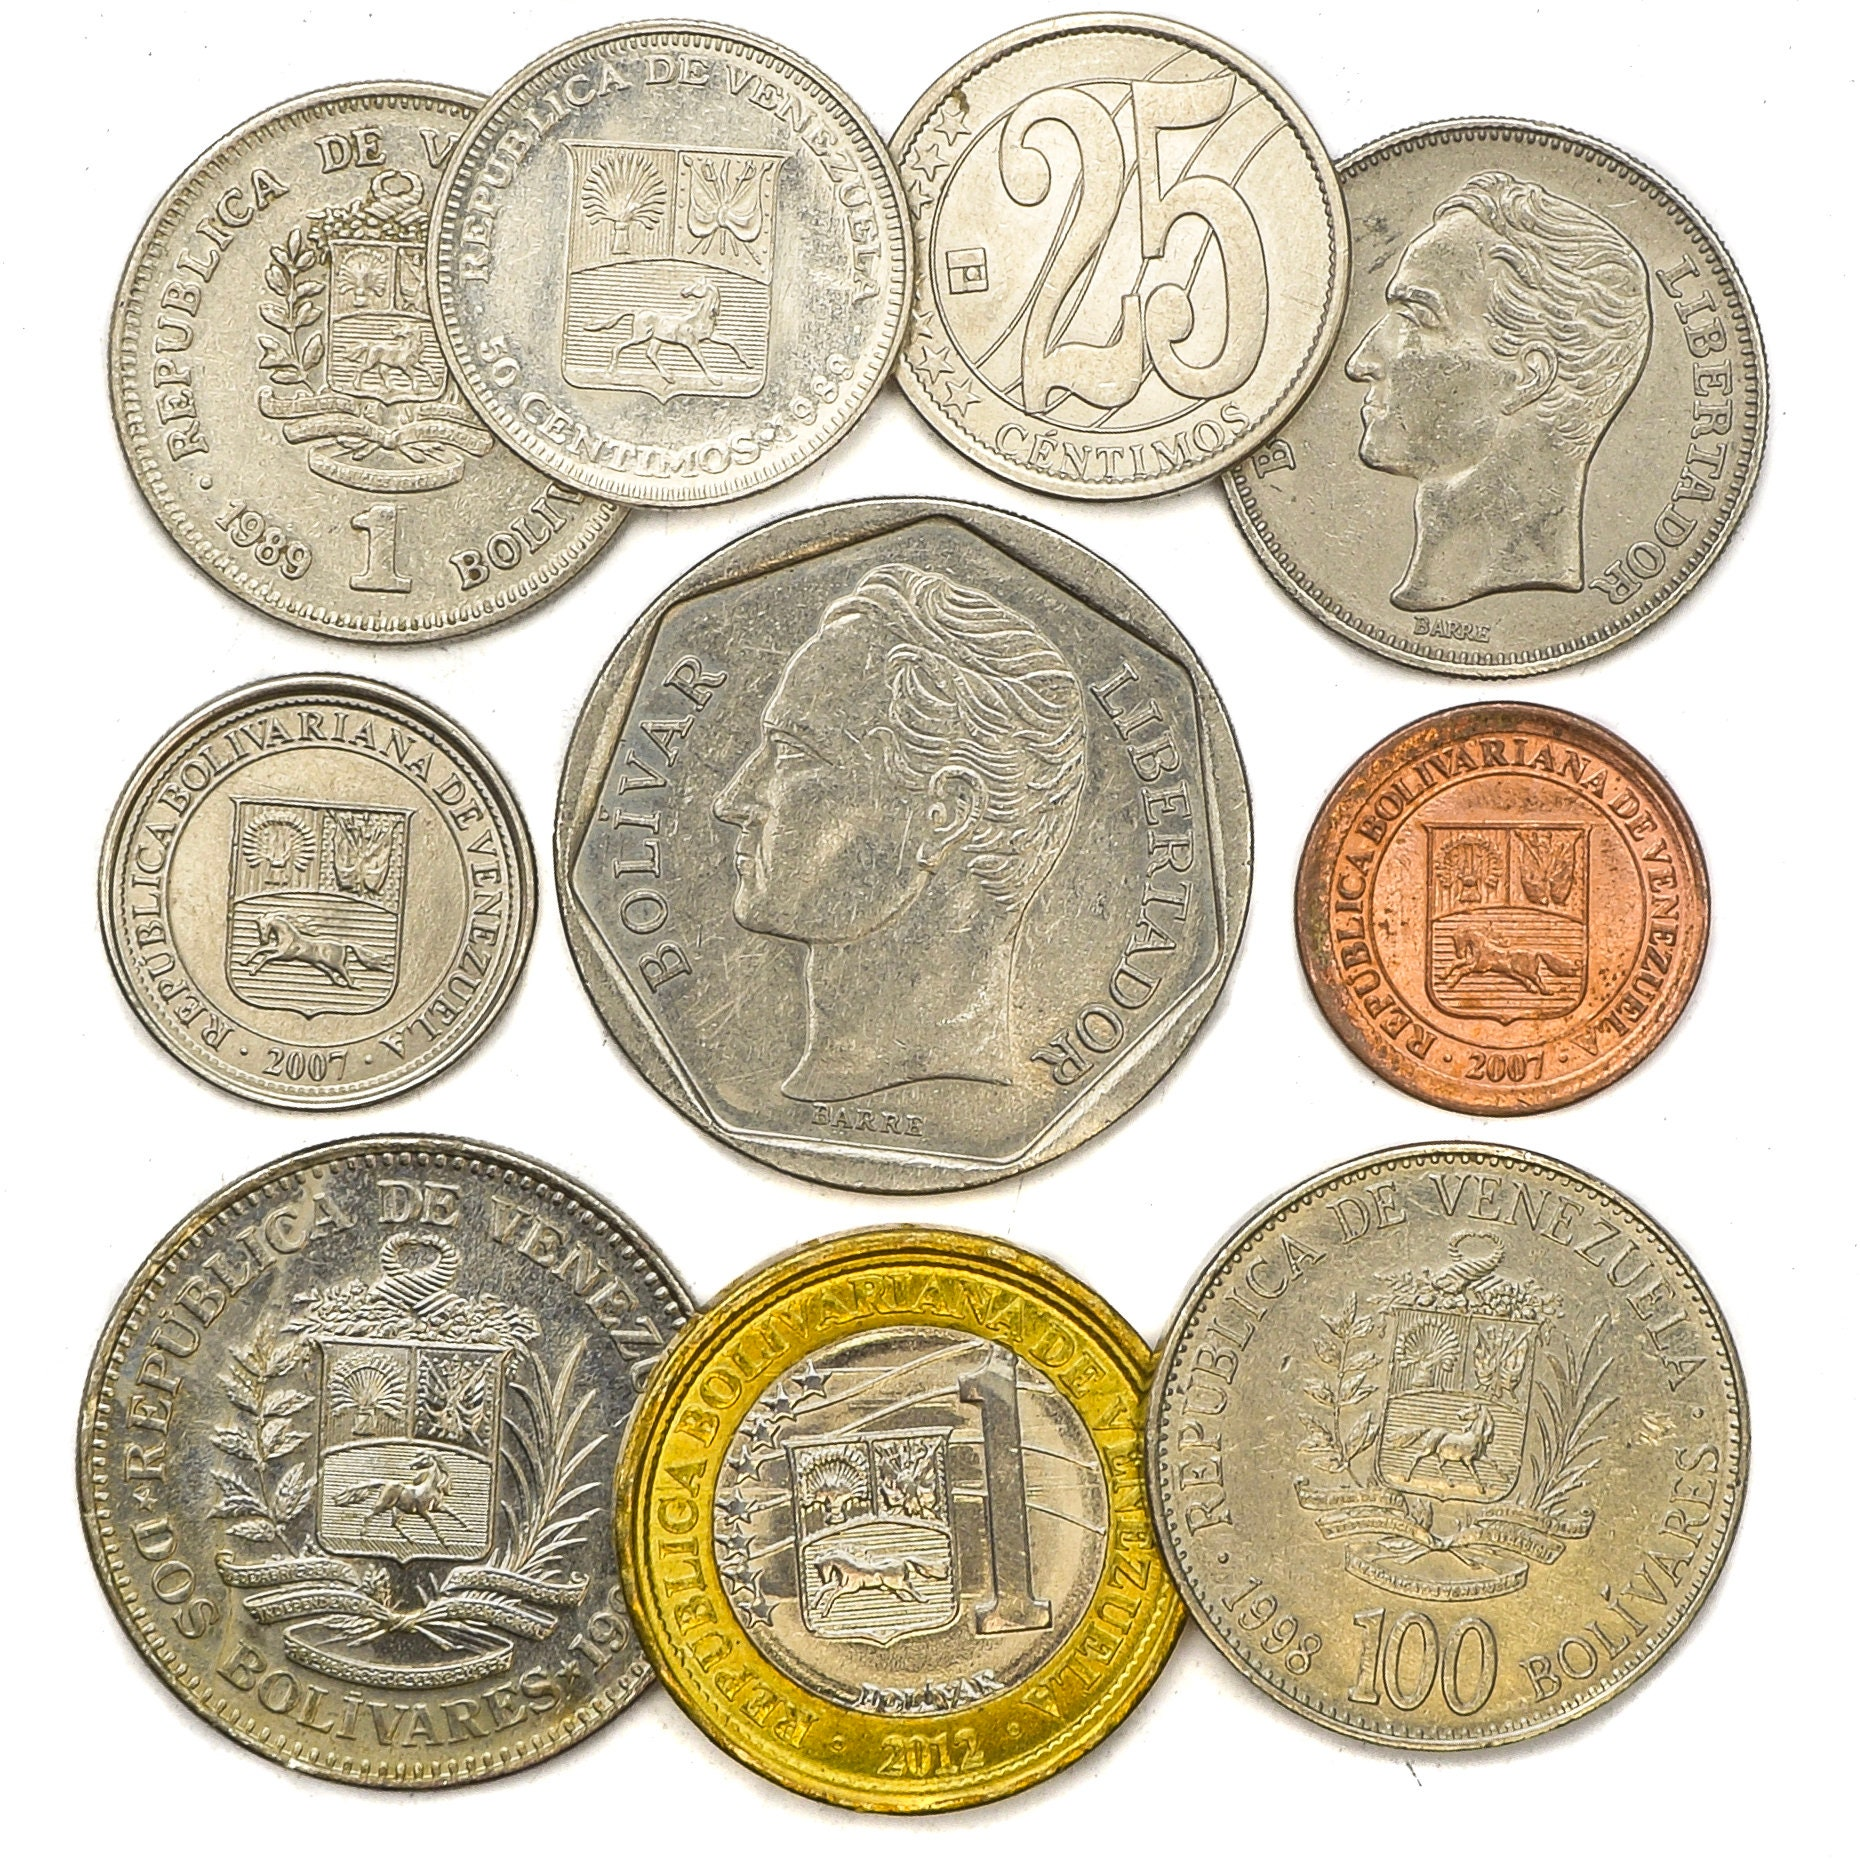 Coins from the Bolivarian Republic of Venezuela  South American old  collectible coins